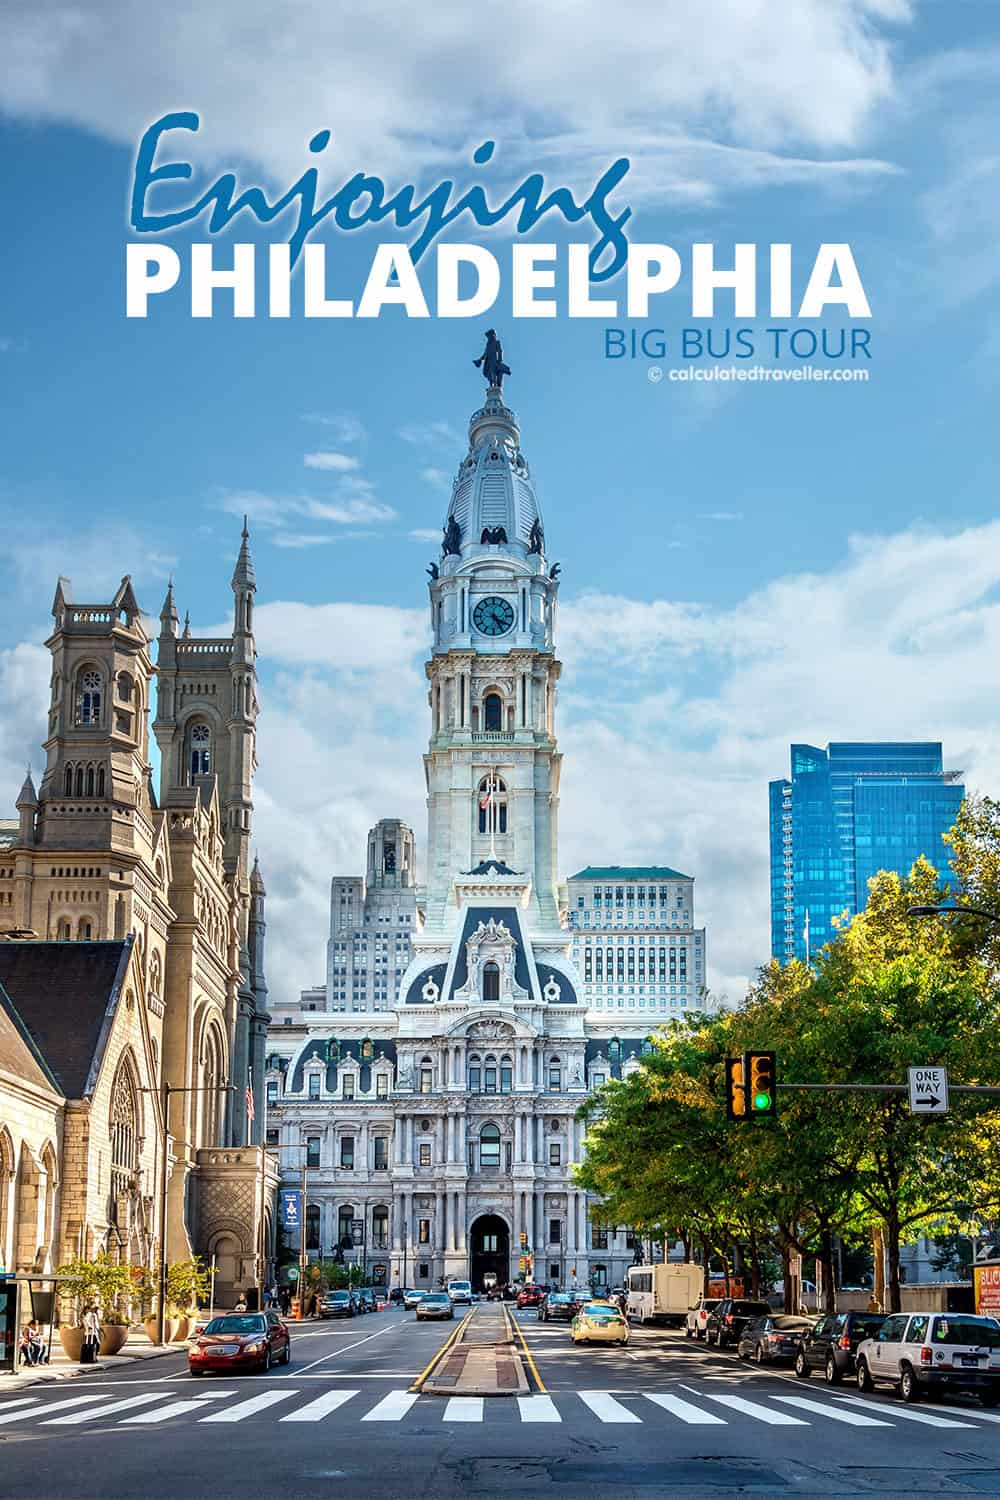 Enjoying Philly with a Philadelphia Big Bus Tour - City Hall | #travel #tour #Phiiladelphia #Pennsylvania #USA